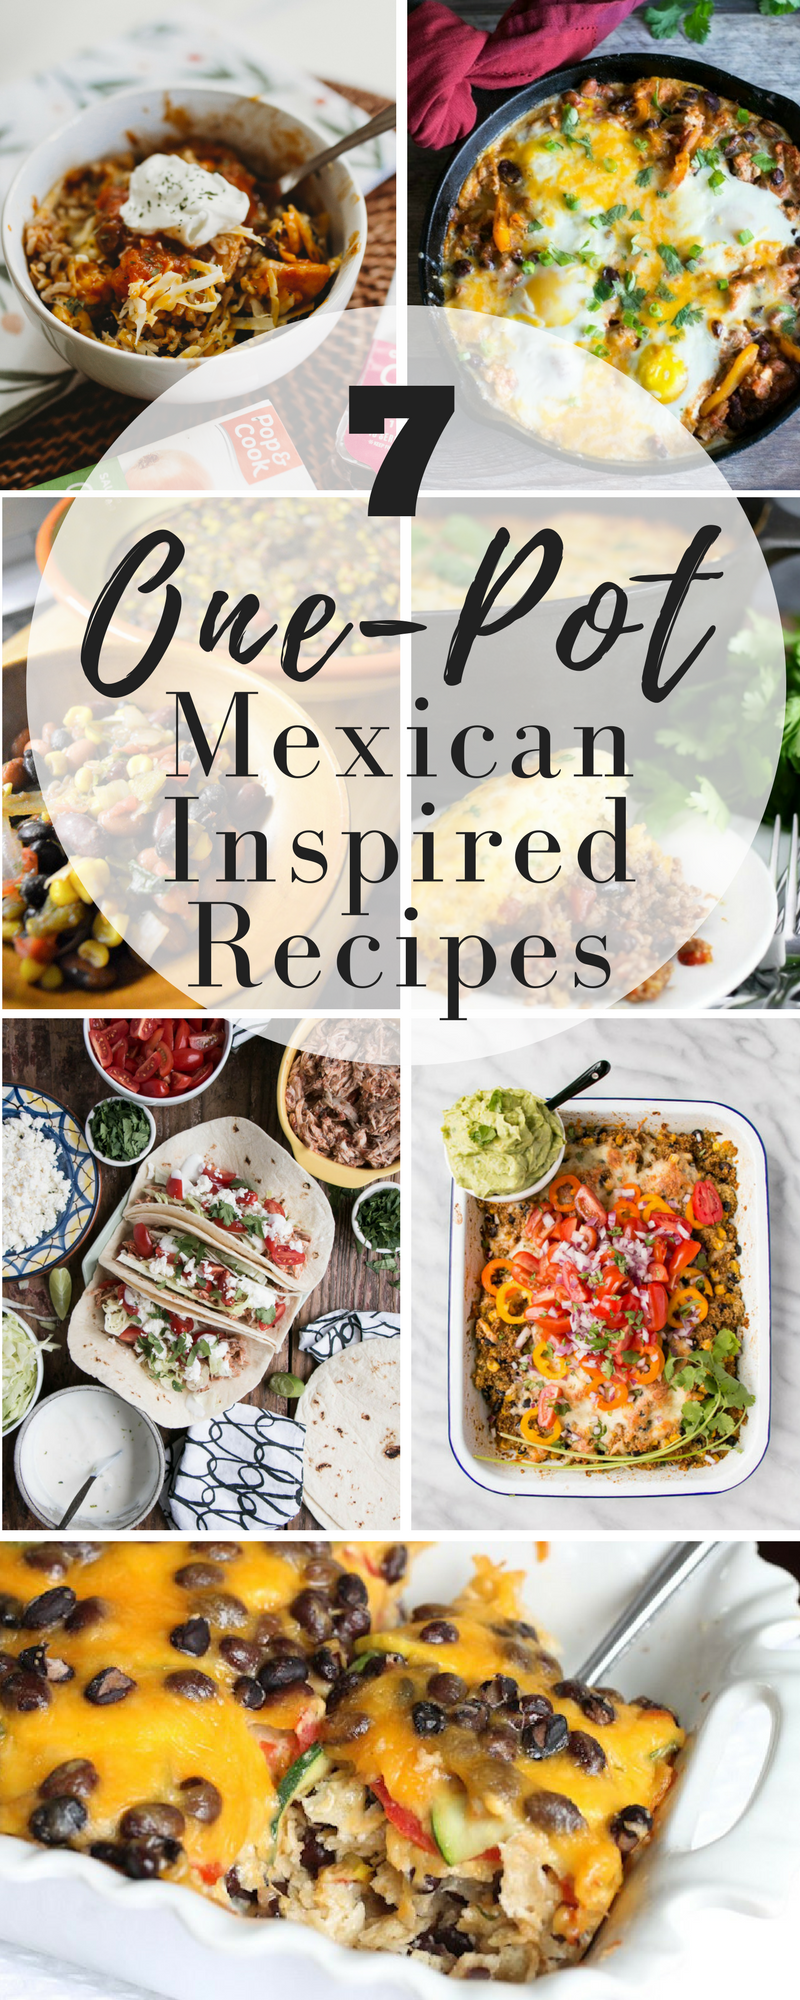 7 One Pot Mexican Inspired Recipes, One Pot Enchilada, Slow Cooker Tacos, Weeknight Slow Cooker Mexican Dishes